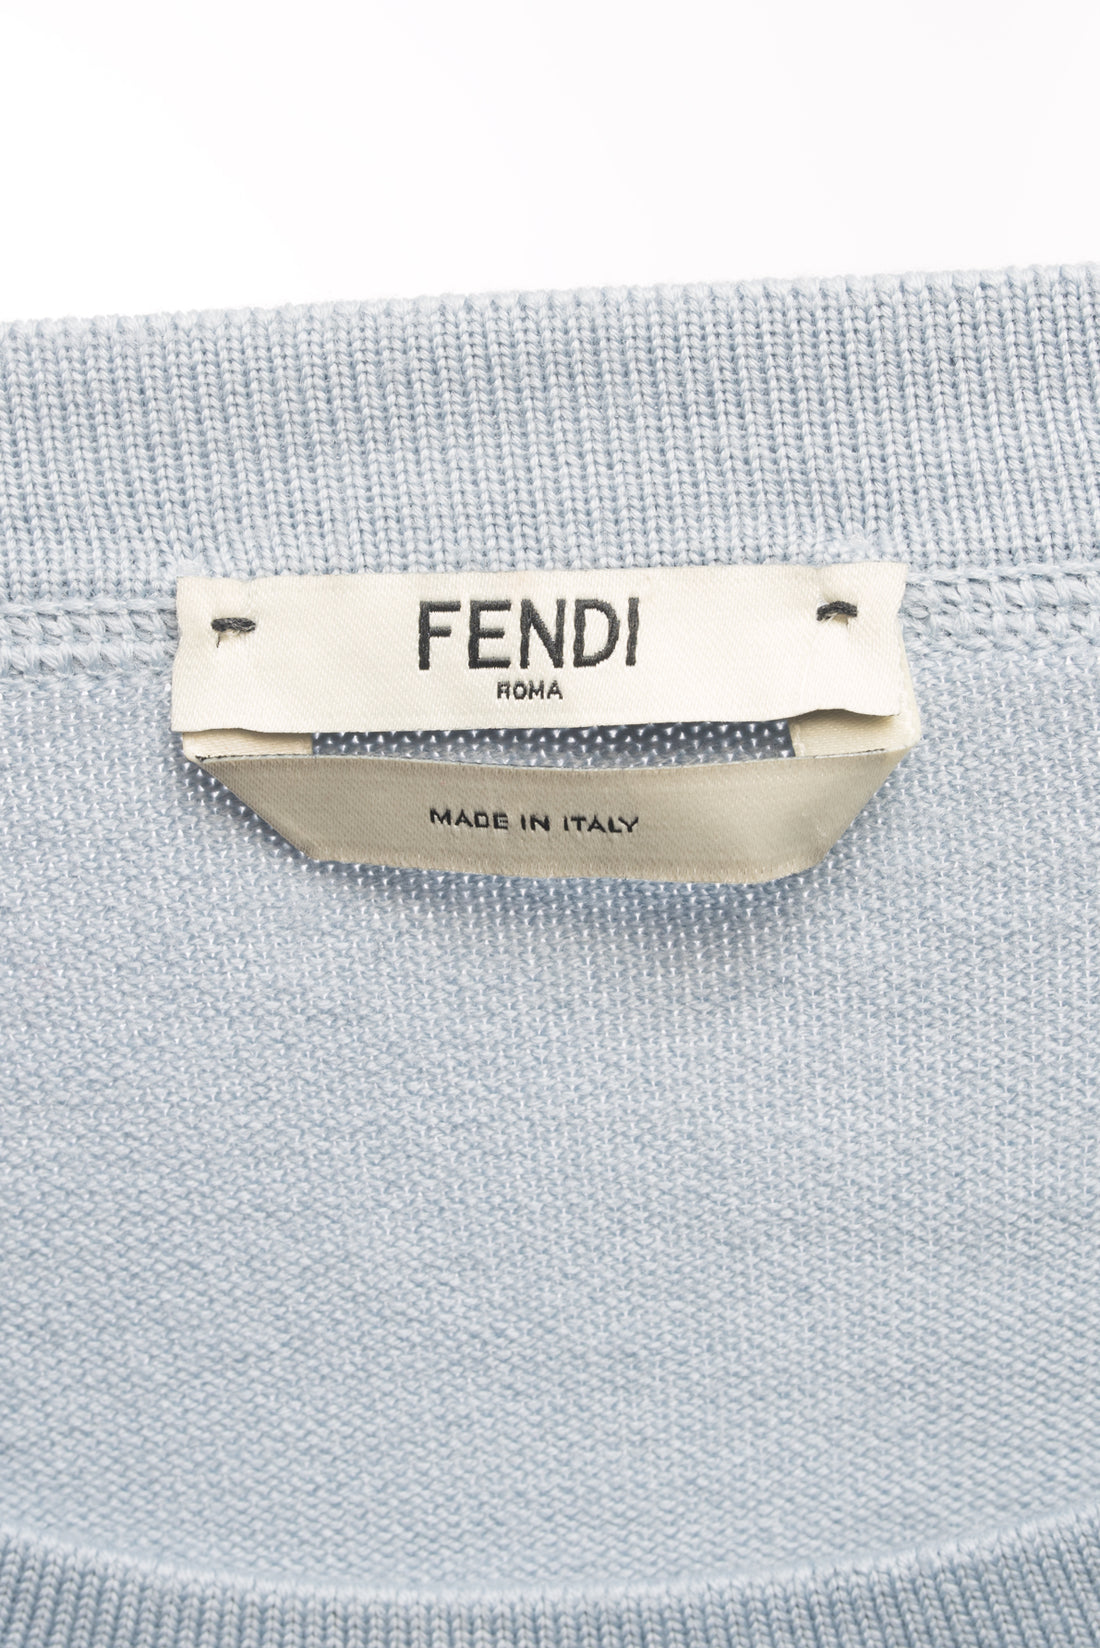 Fendi Light Blue and Pink Knit Monster Bag Bug Fur Eyes Sweater - 6